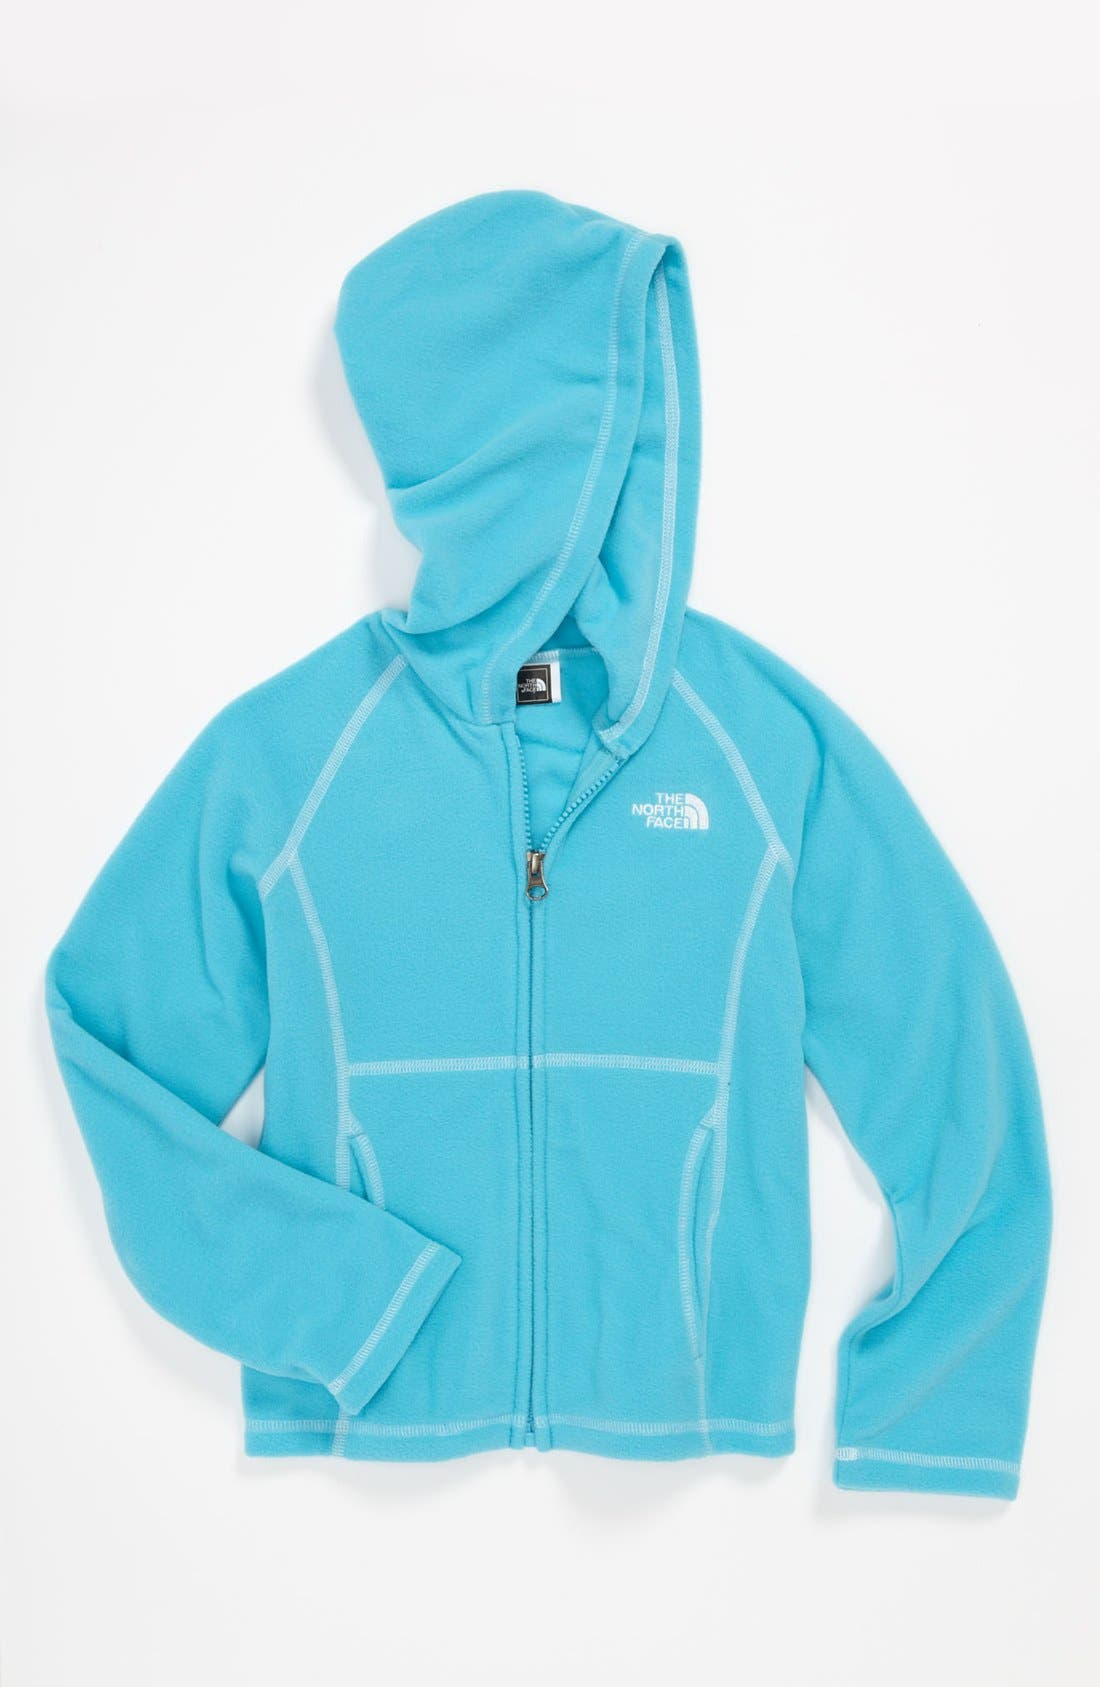 Main Image - The North Face 'Glacier' Hoodie (Little Girls & Big Girls)